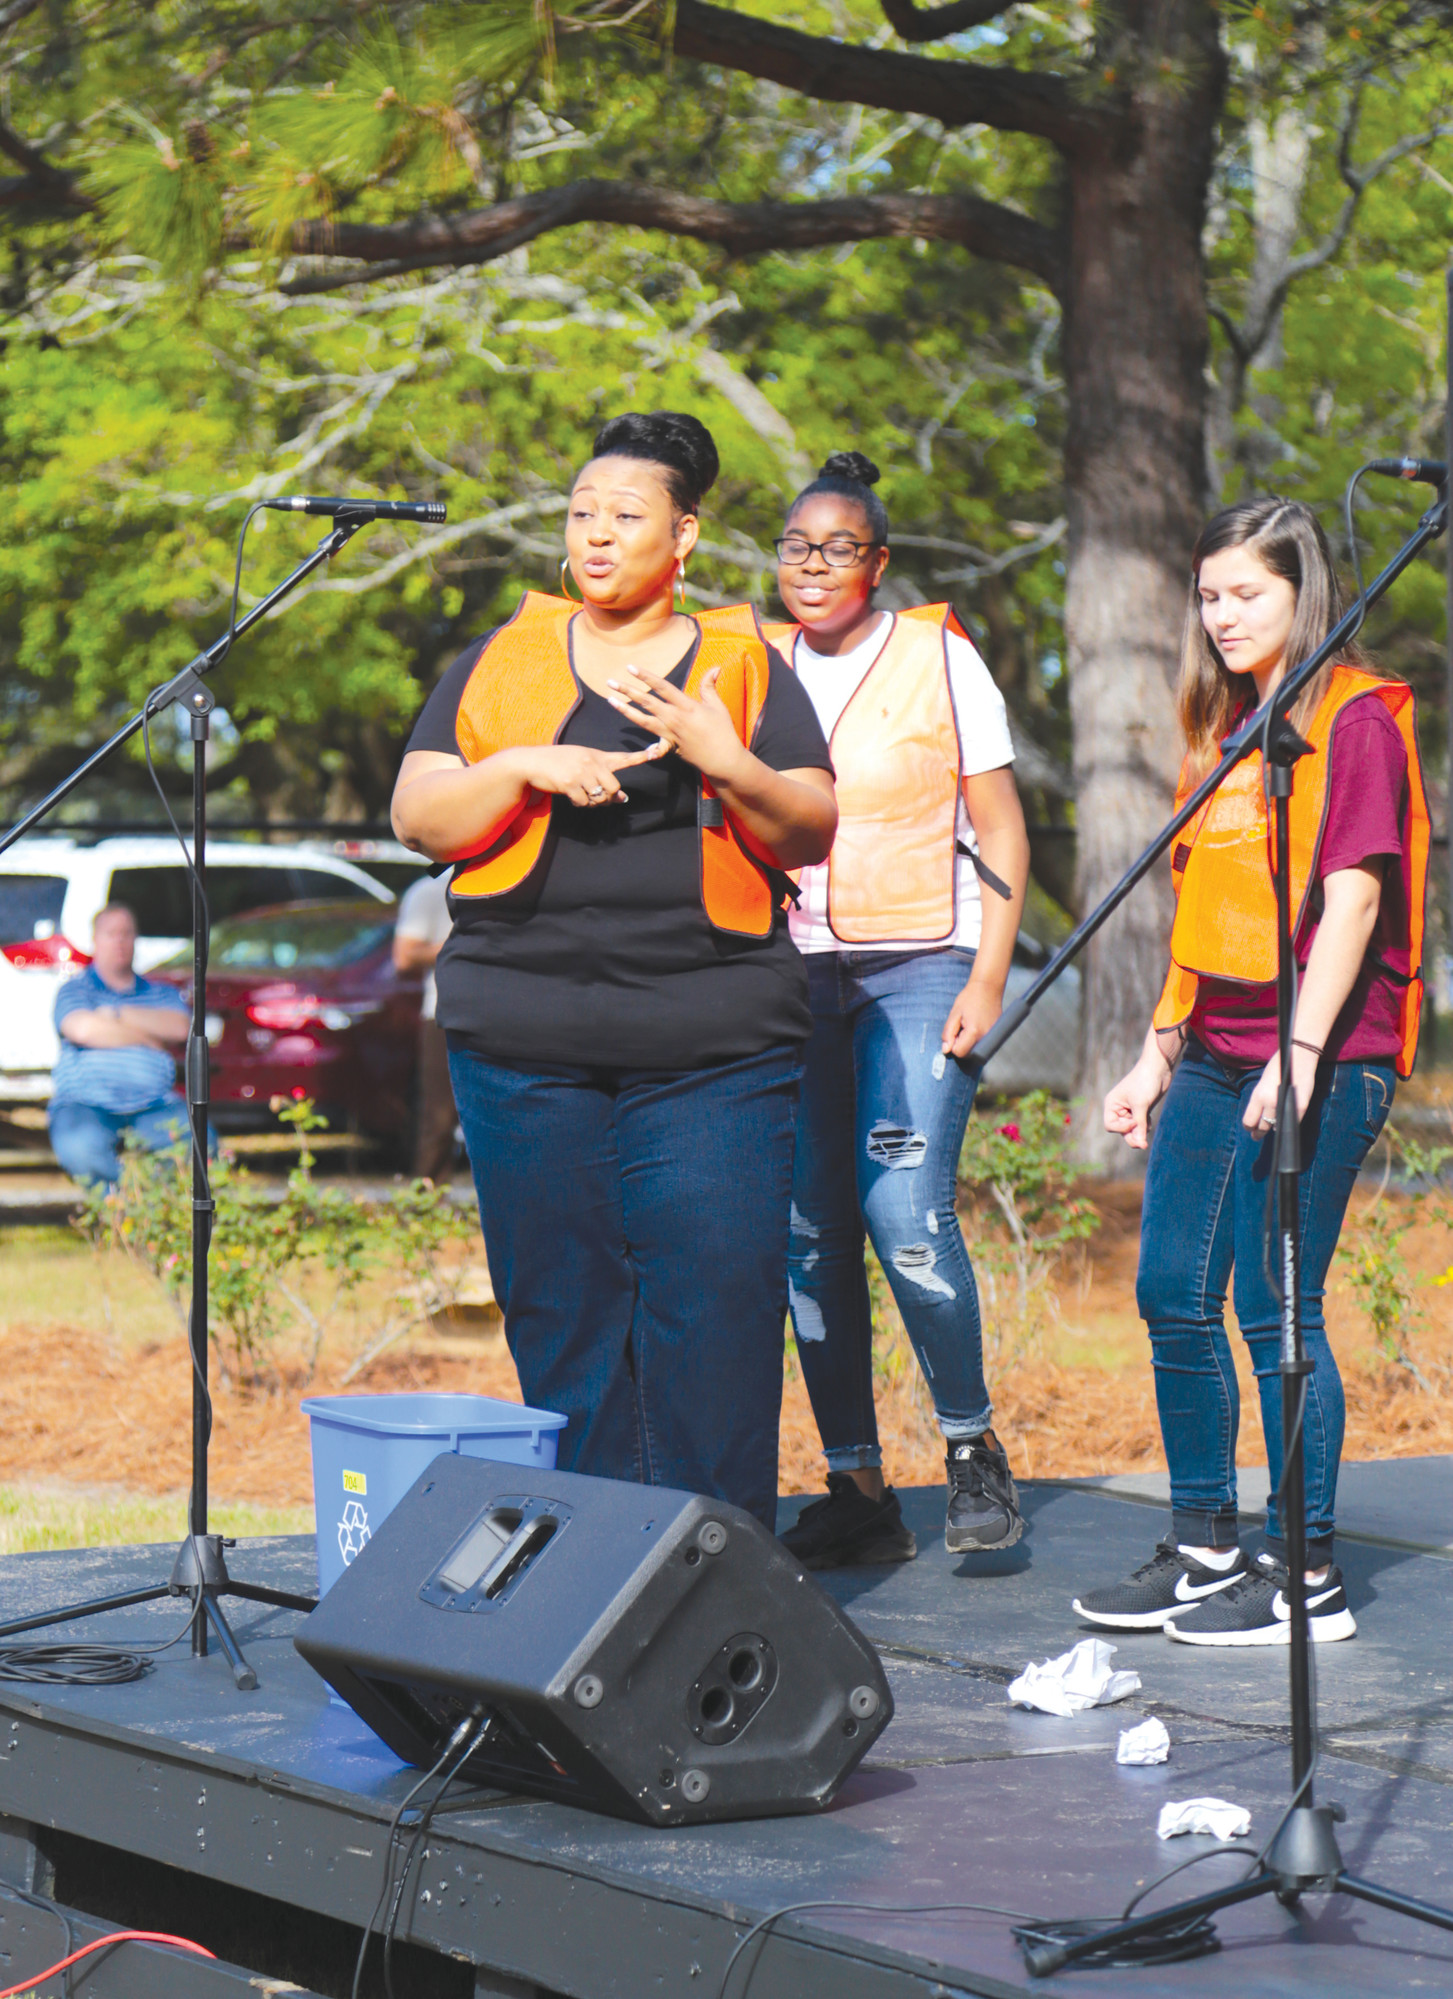 Melissa Pollard and students from her seventh-grade class at Ebenezer Middle School perform a rap that she wrote encouraging people to recycle.